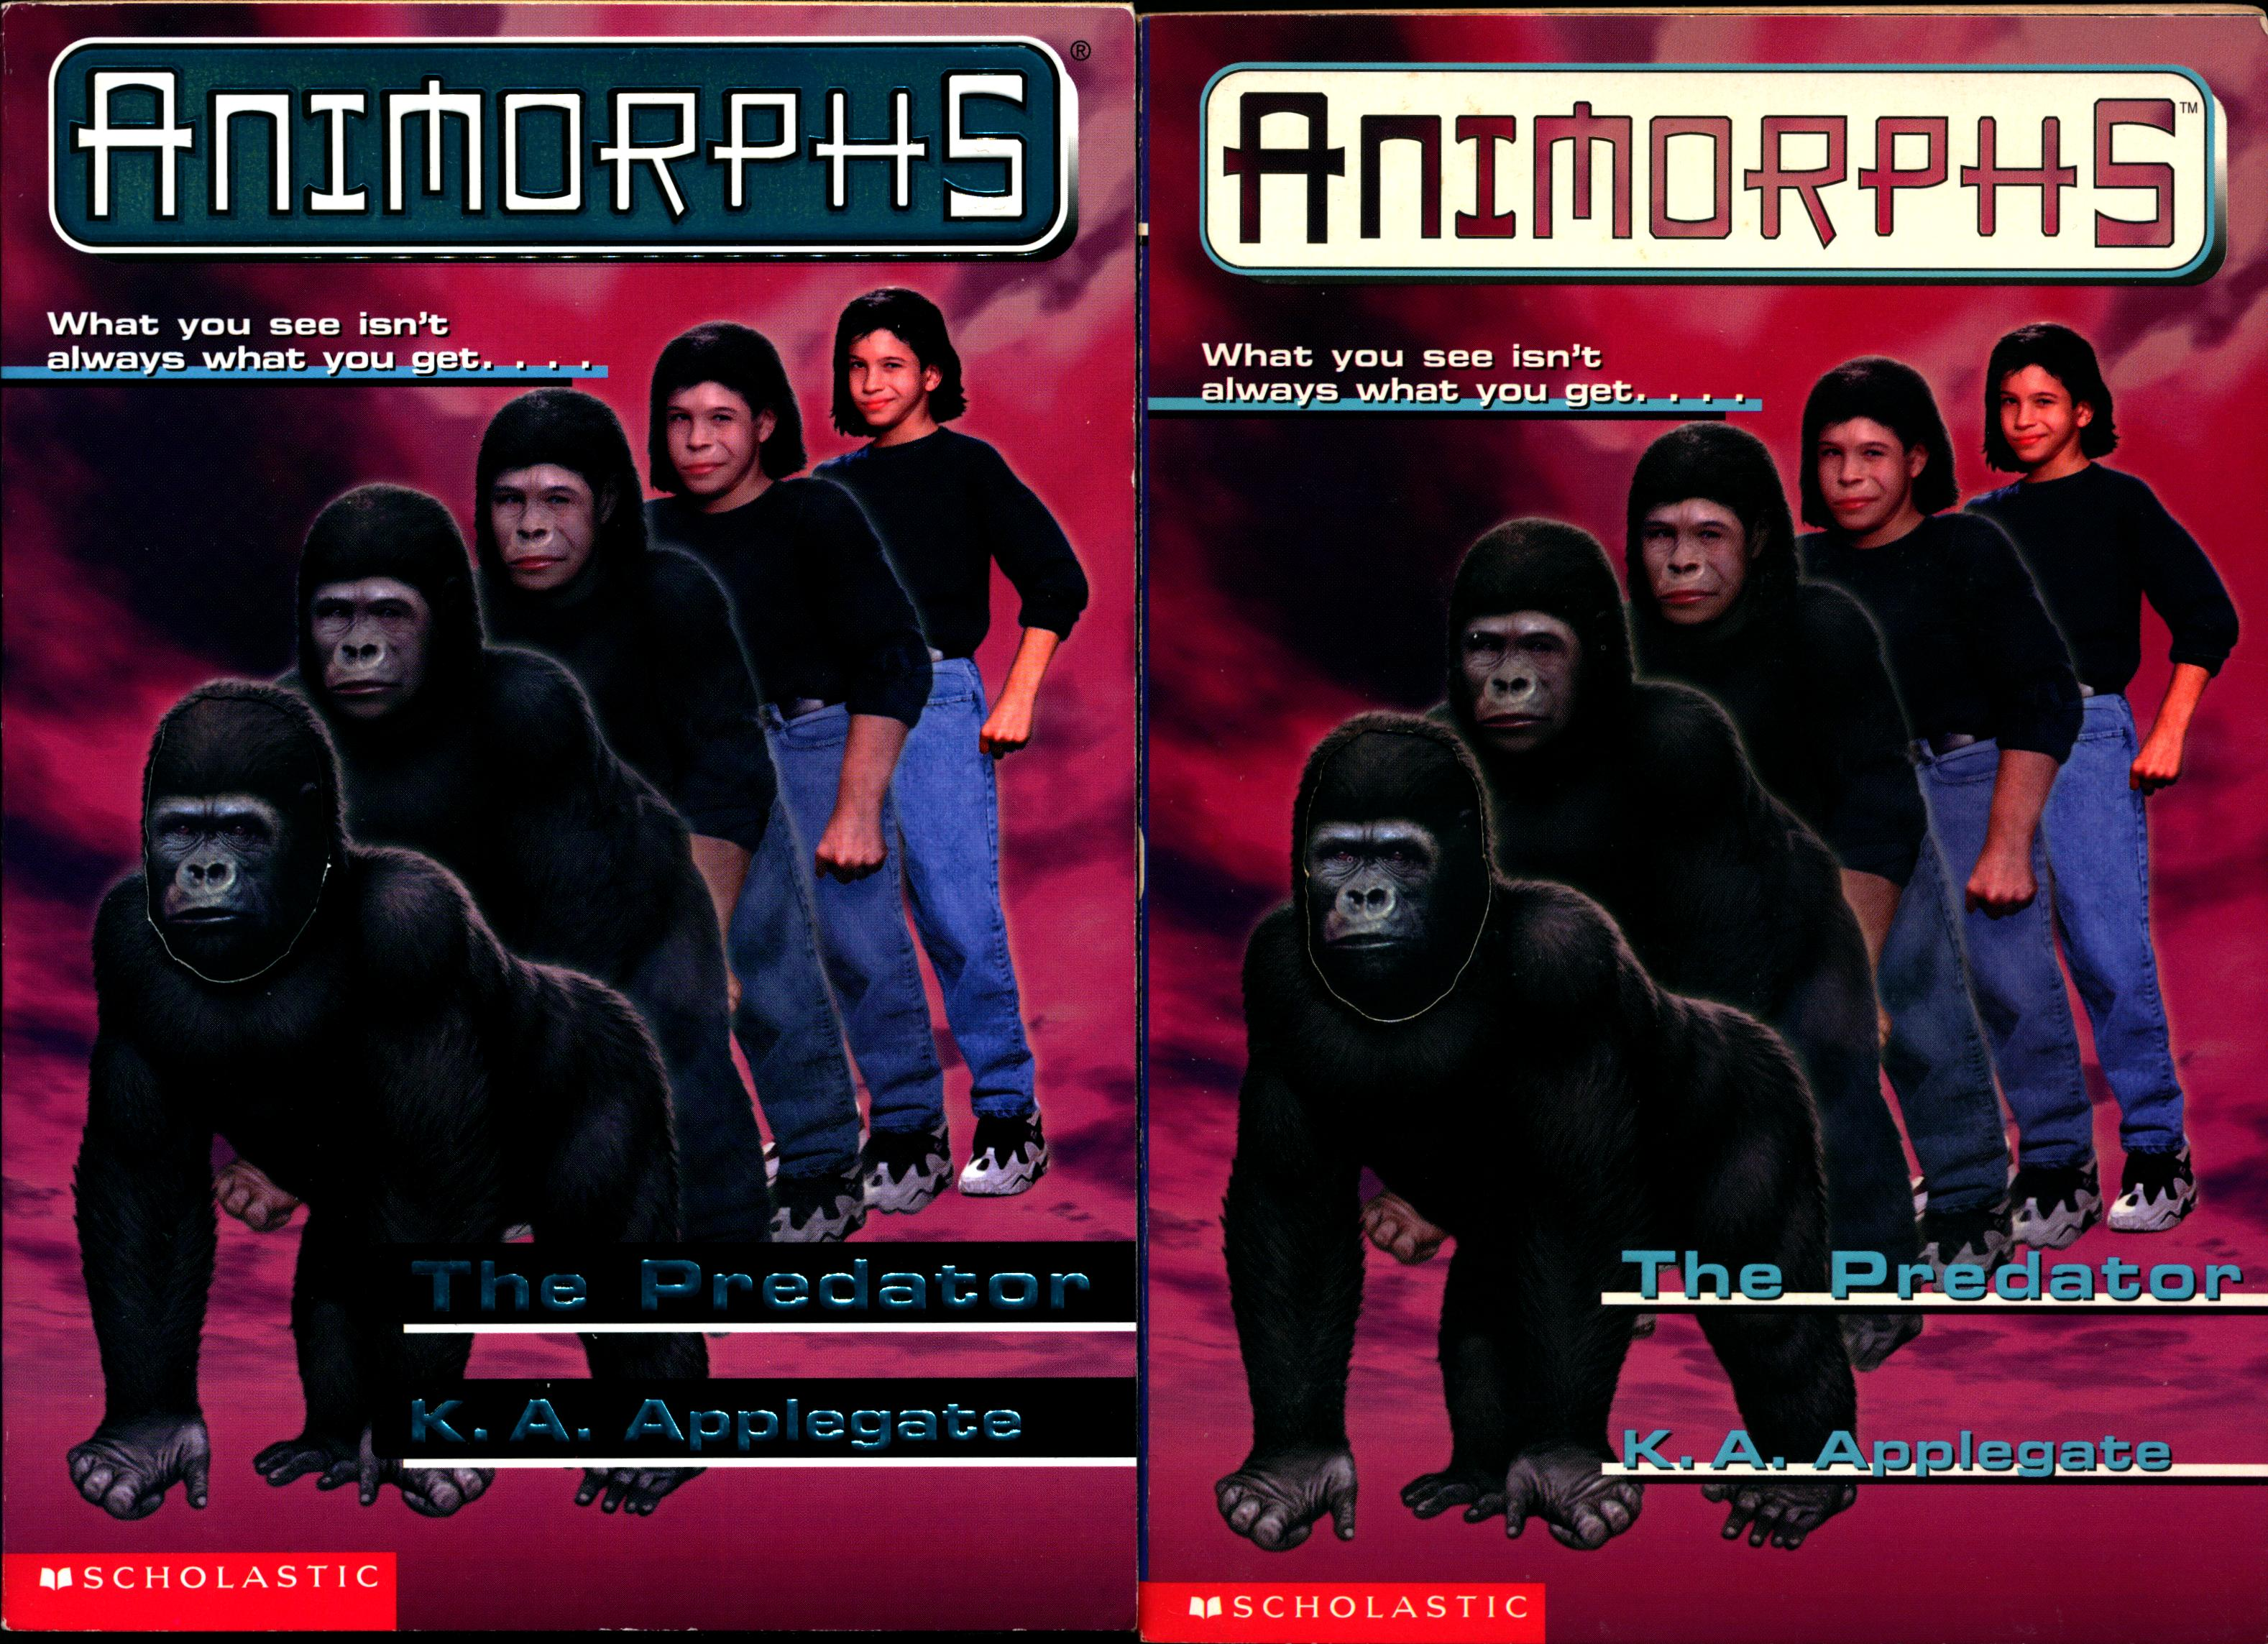 image animorphs book 5 predator 2 covers earlier and later